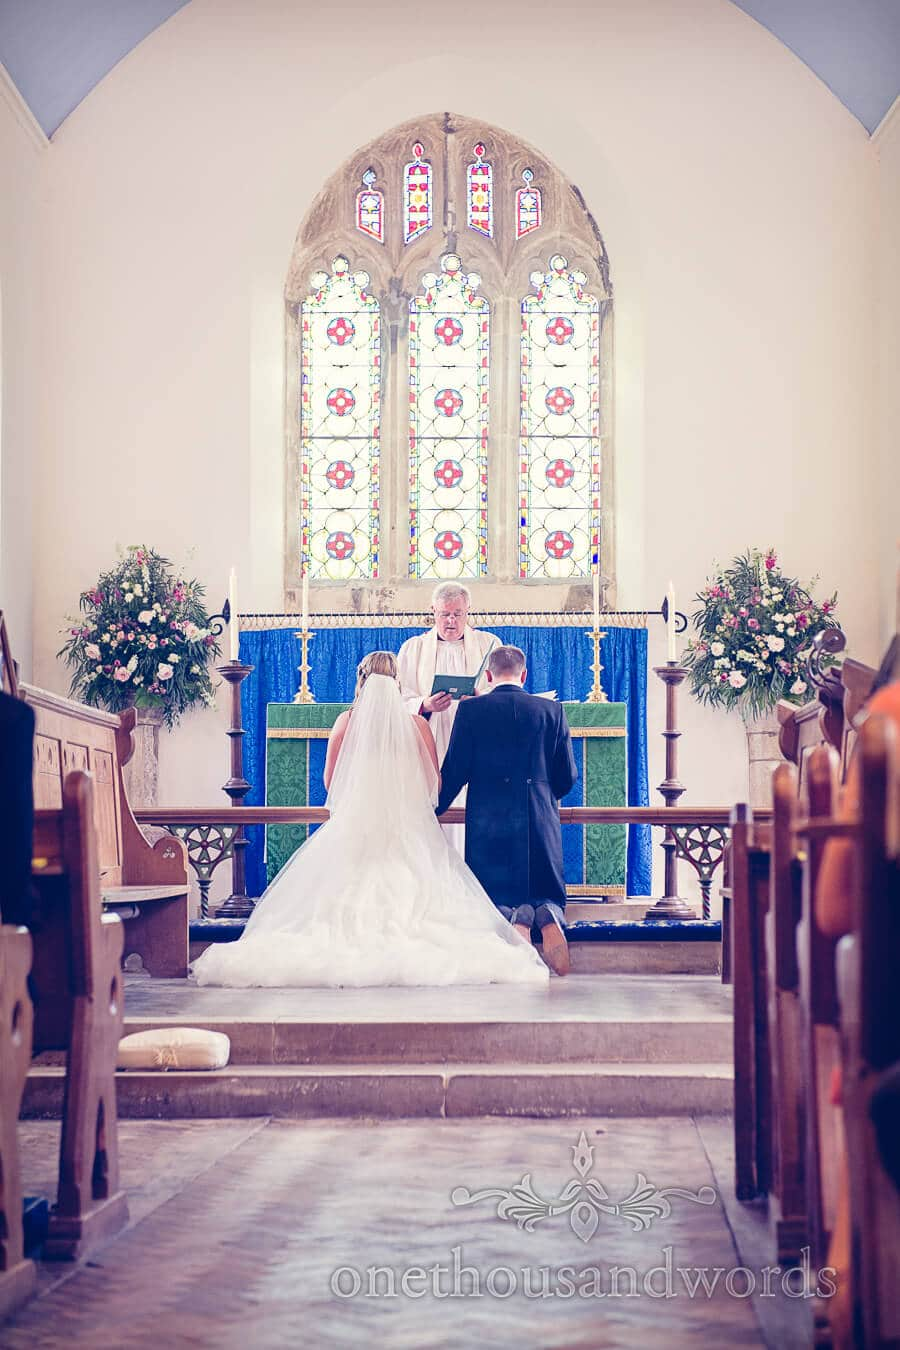 Bride and groom kneel before altar at church wedding ceremony